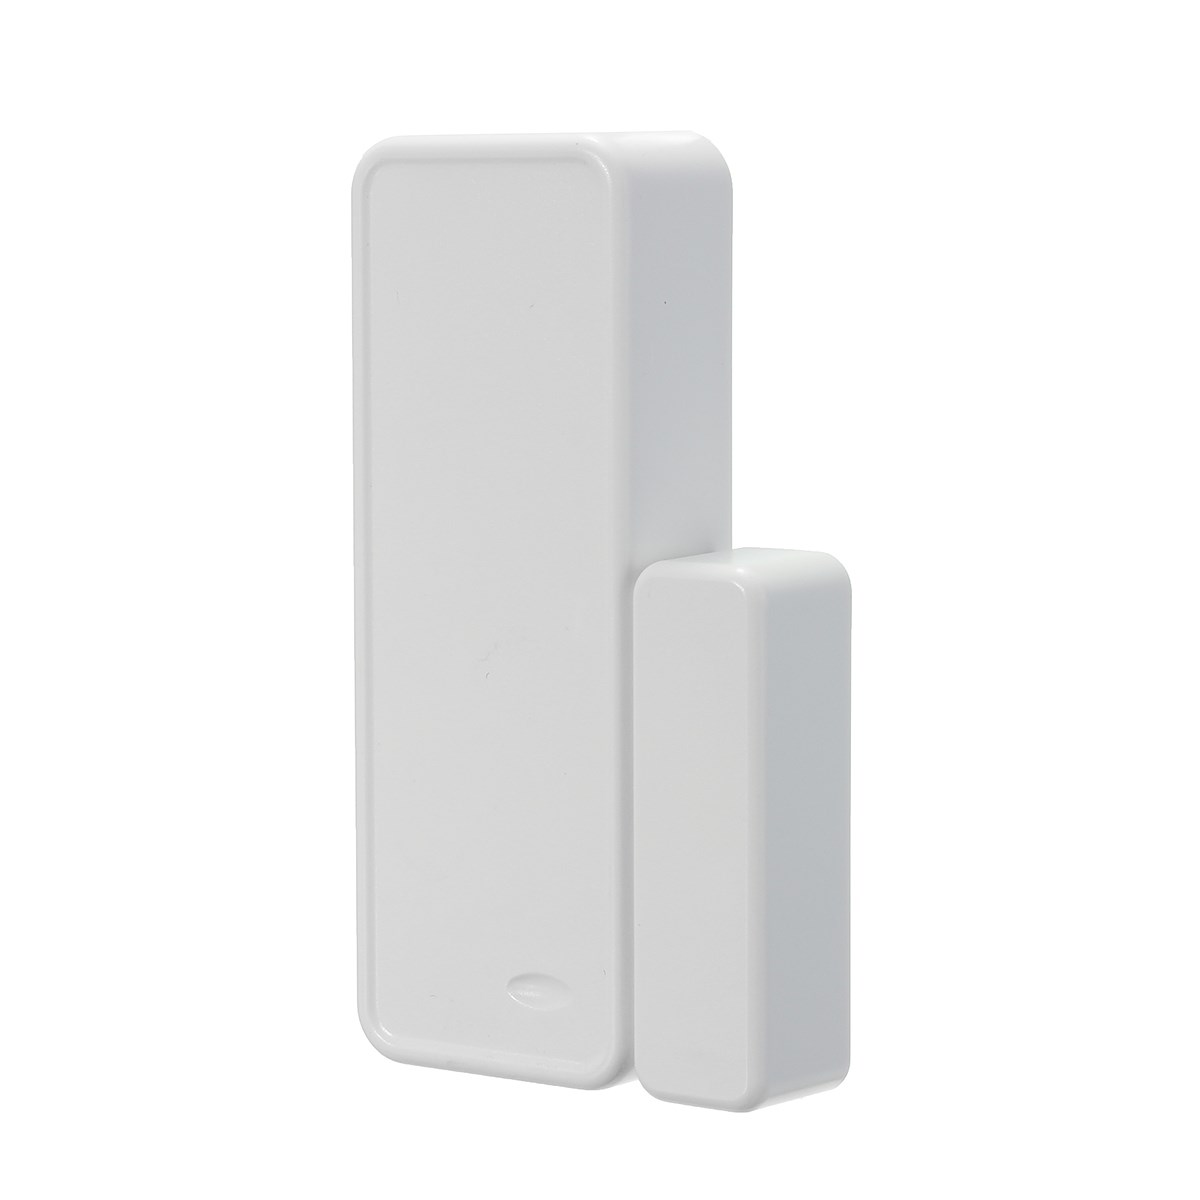 Safurance Wireless Alarm Sensors Accessories For G90B PLUS WiFi GSM Home Alarm System Door Sensor thyssen parts leveling sensor yg 39g1k door zone switch leveling photoelectric sensors